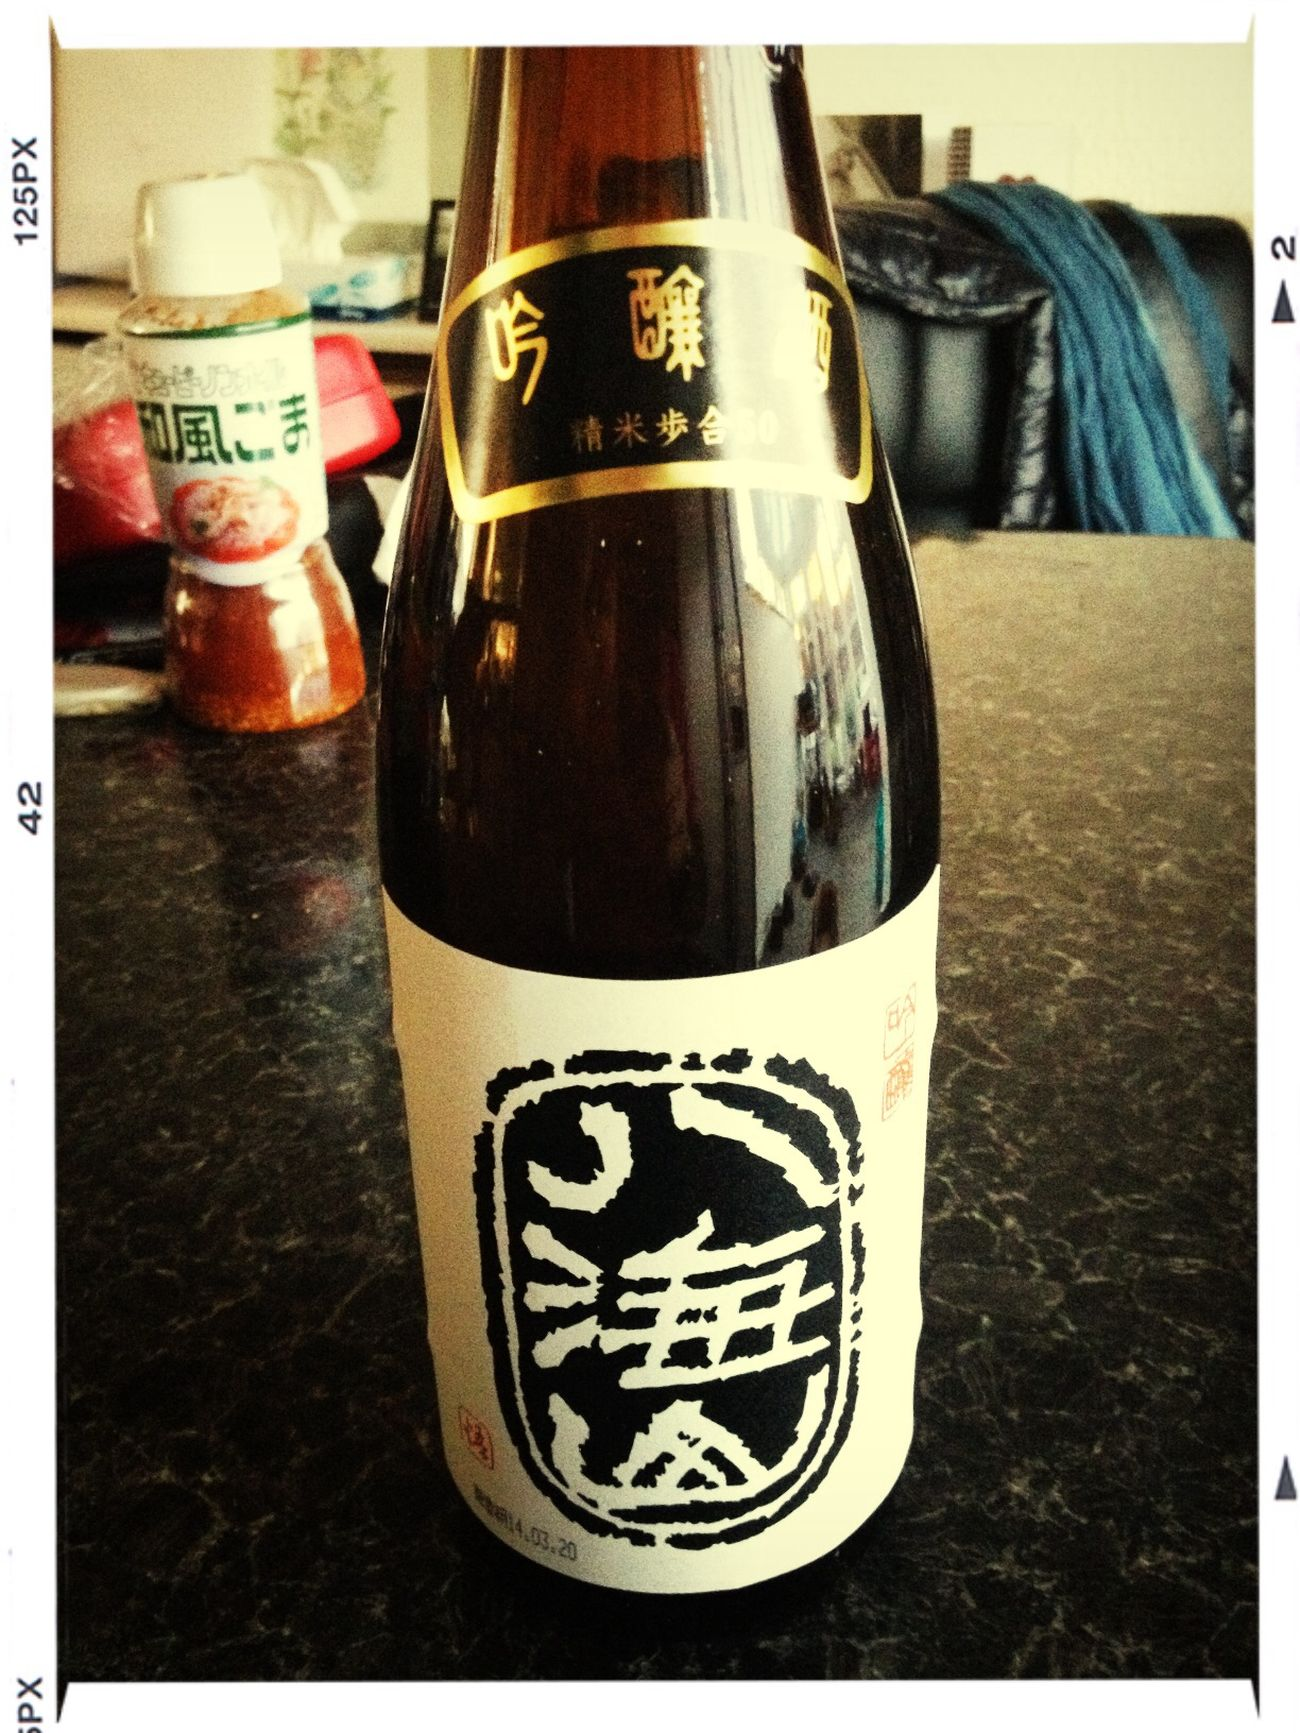 Sake from Niigata...best served chilled... Japanese Sake